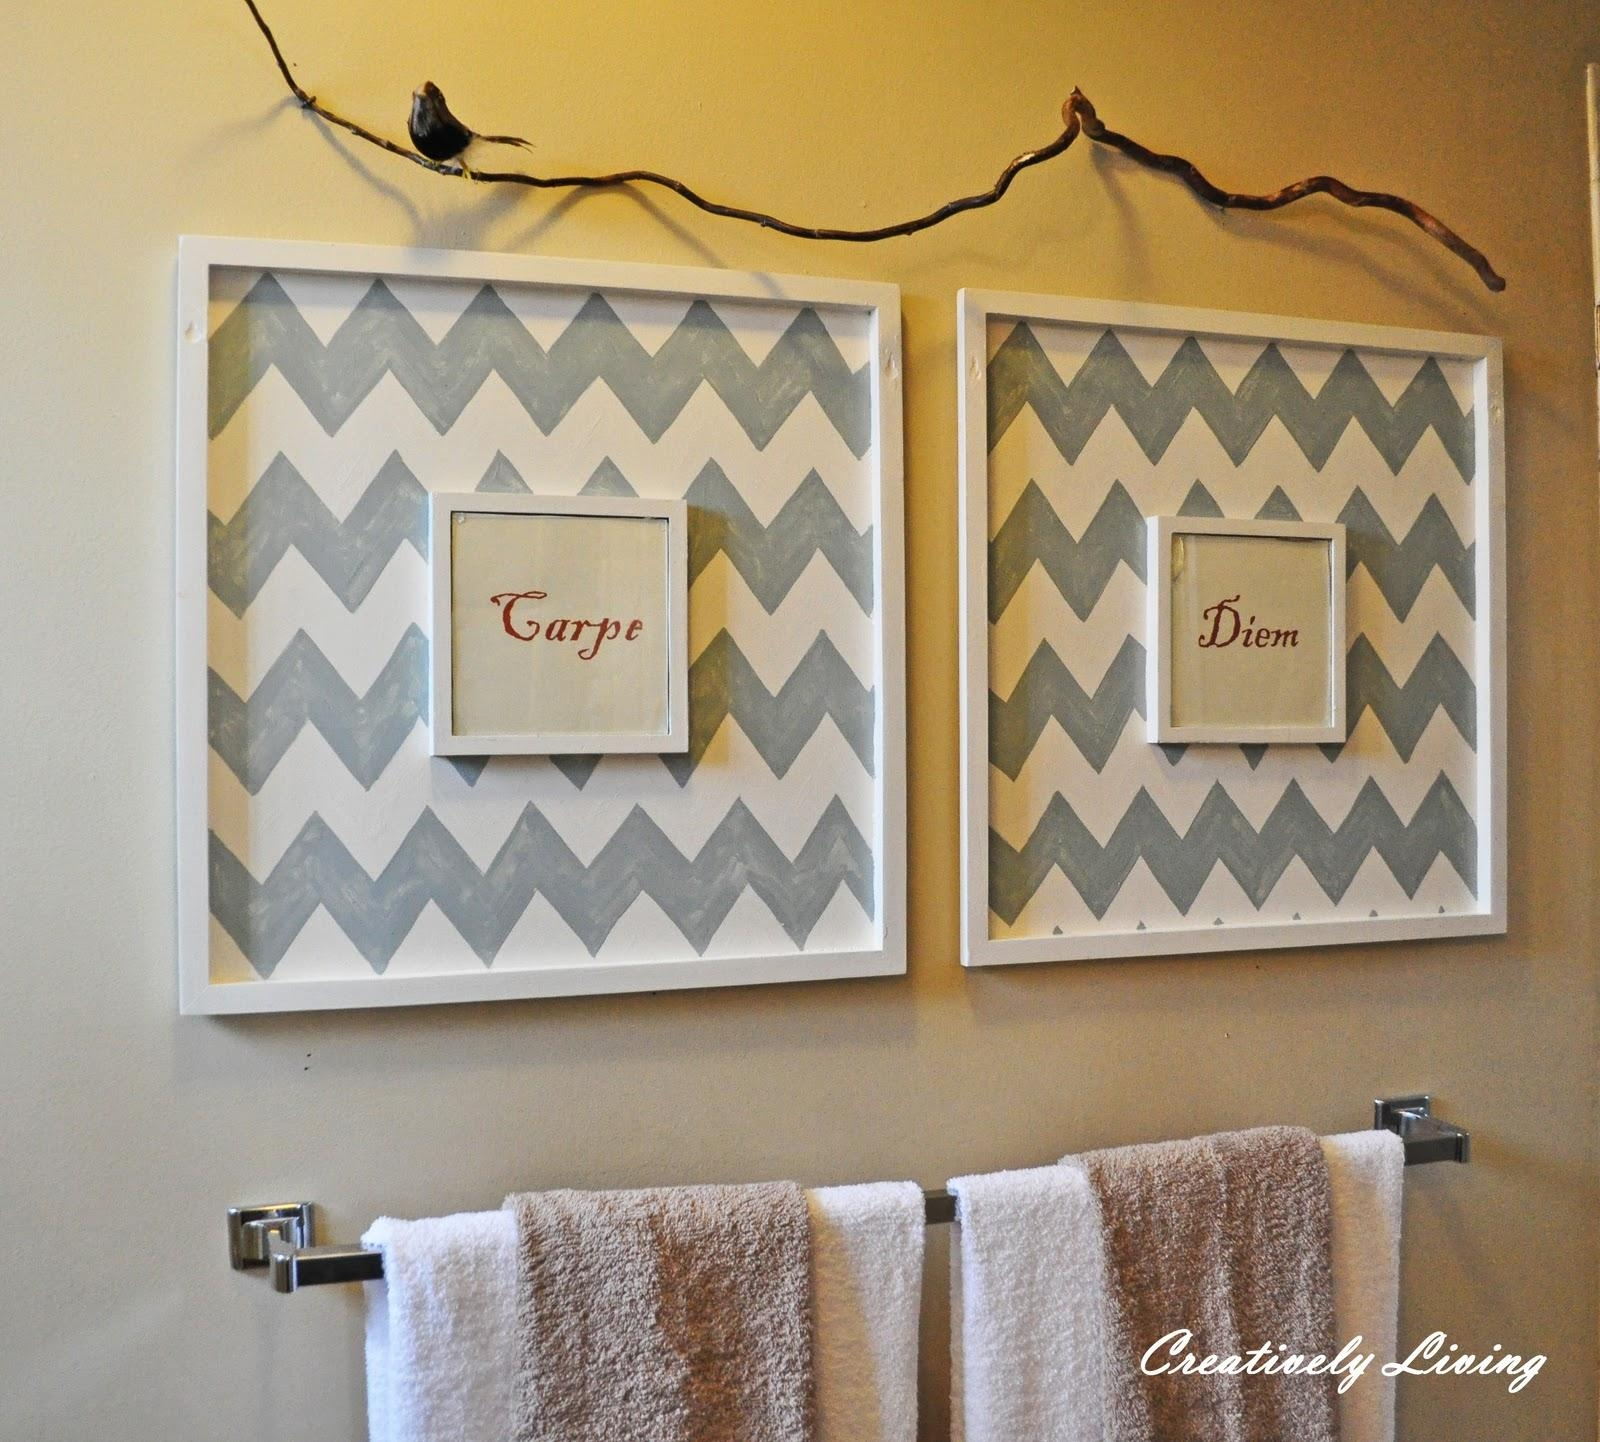 Bathroom Wall Art – Creatively Living Blog Intended For Shower Room Wall Art (View 8 of 20)